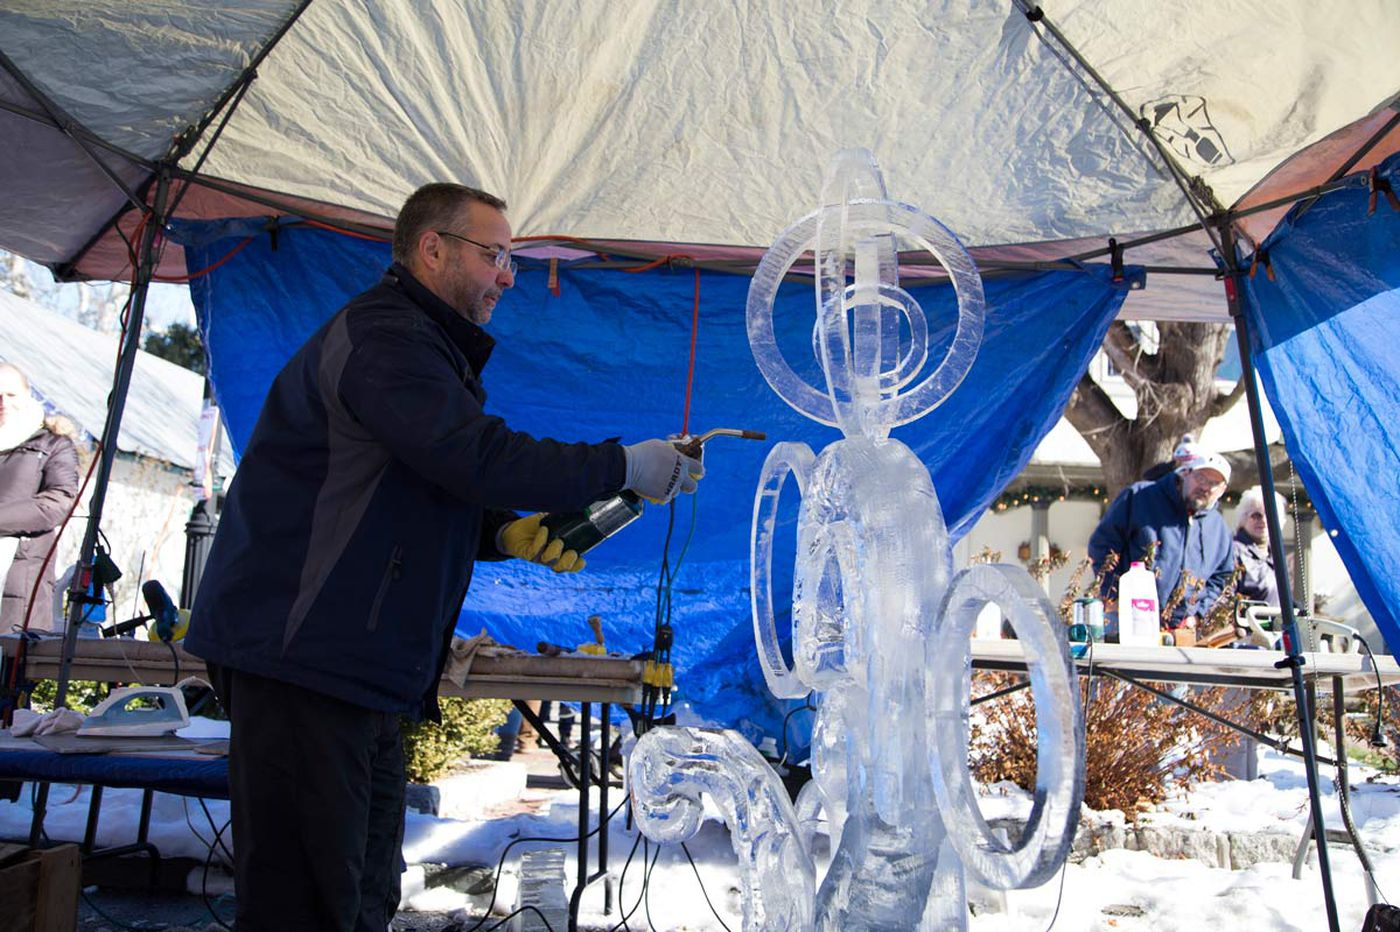 Ice sculpture, hot chili star at Jersey Fire & Ice fest